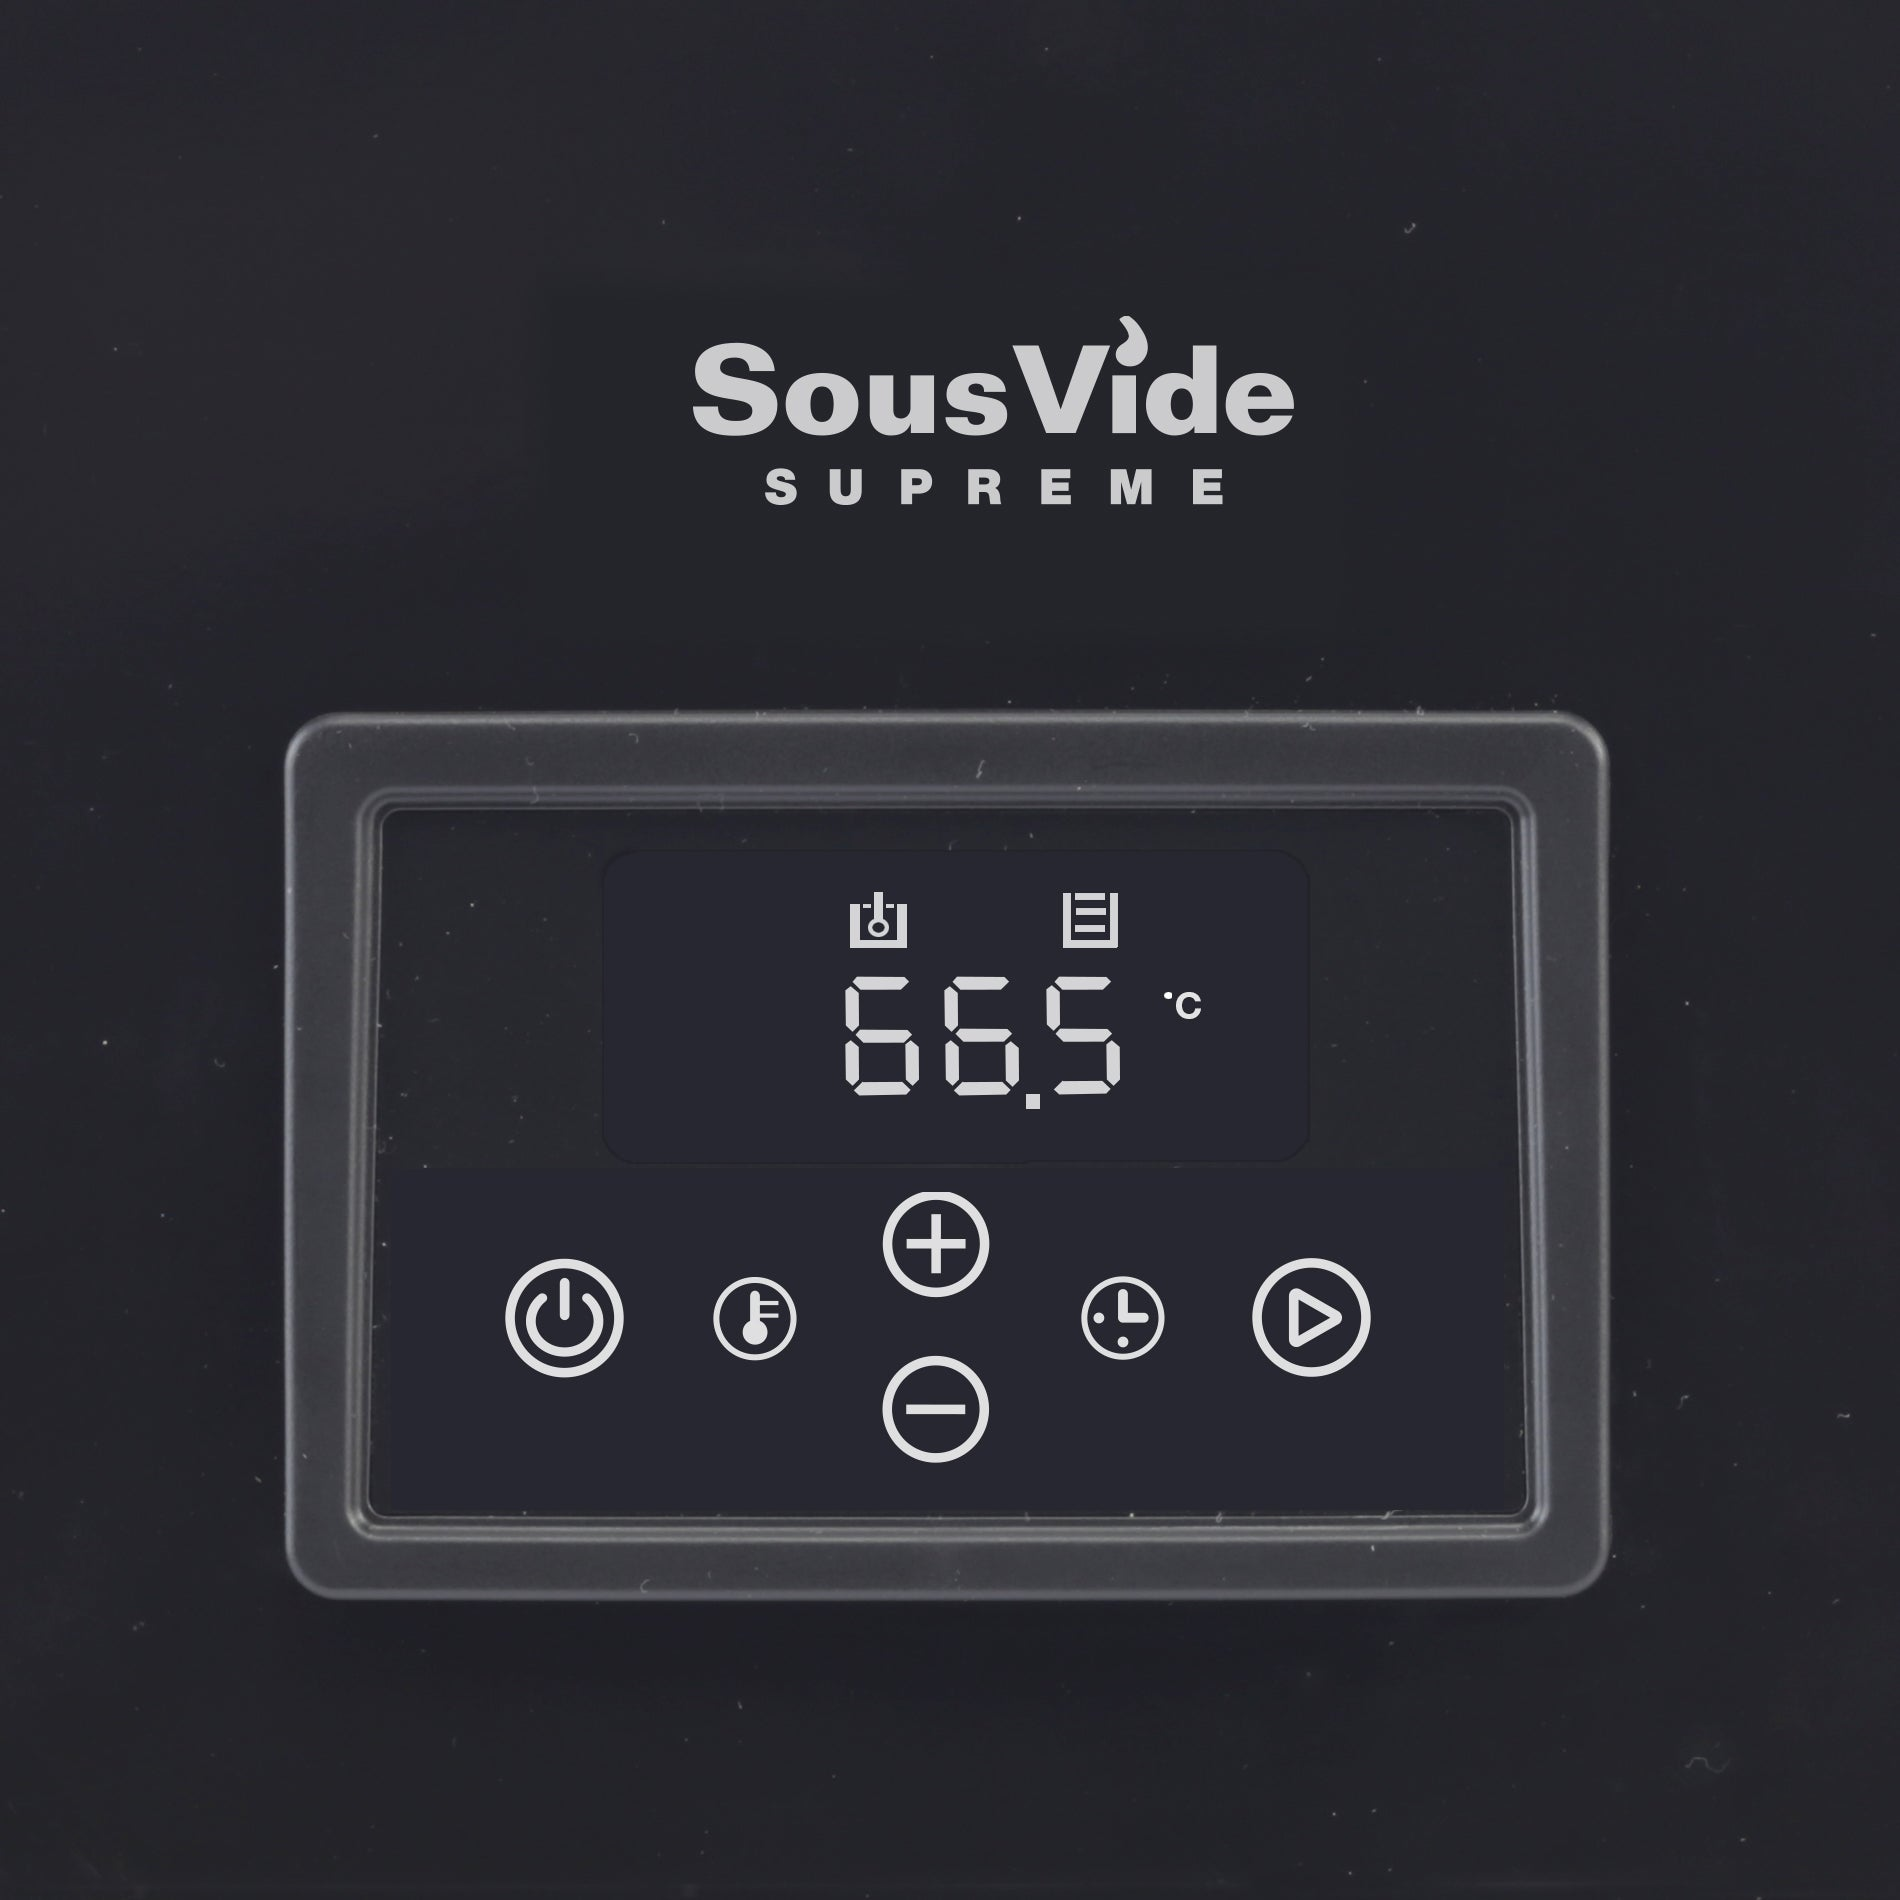 SousVide Supreme Demi Touch water oven touch panel